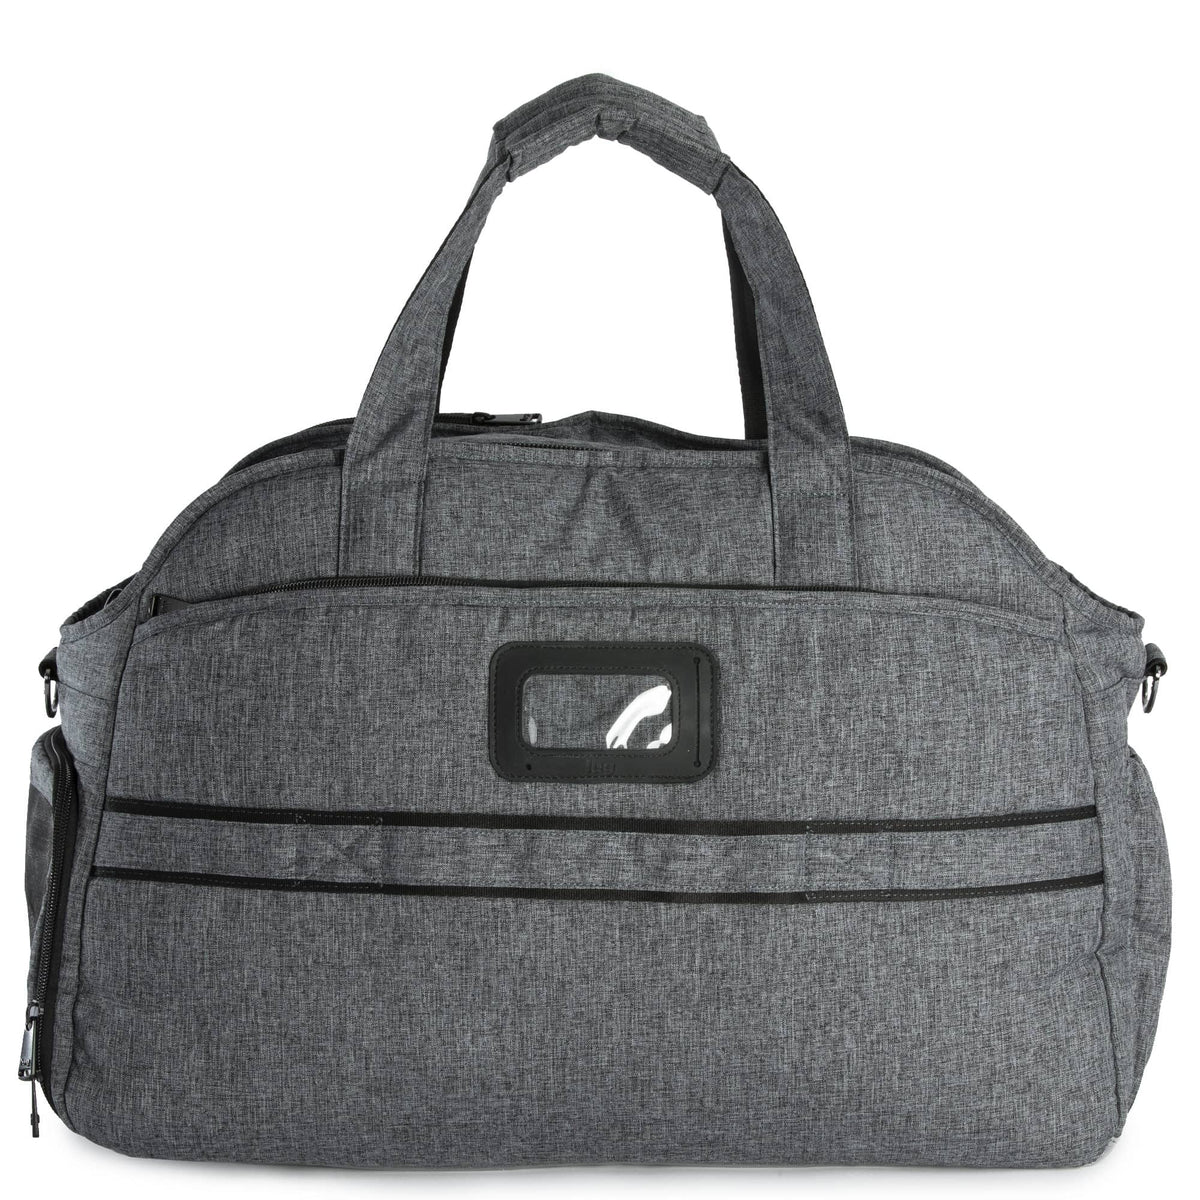 Airbus Overnight Bag